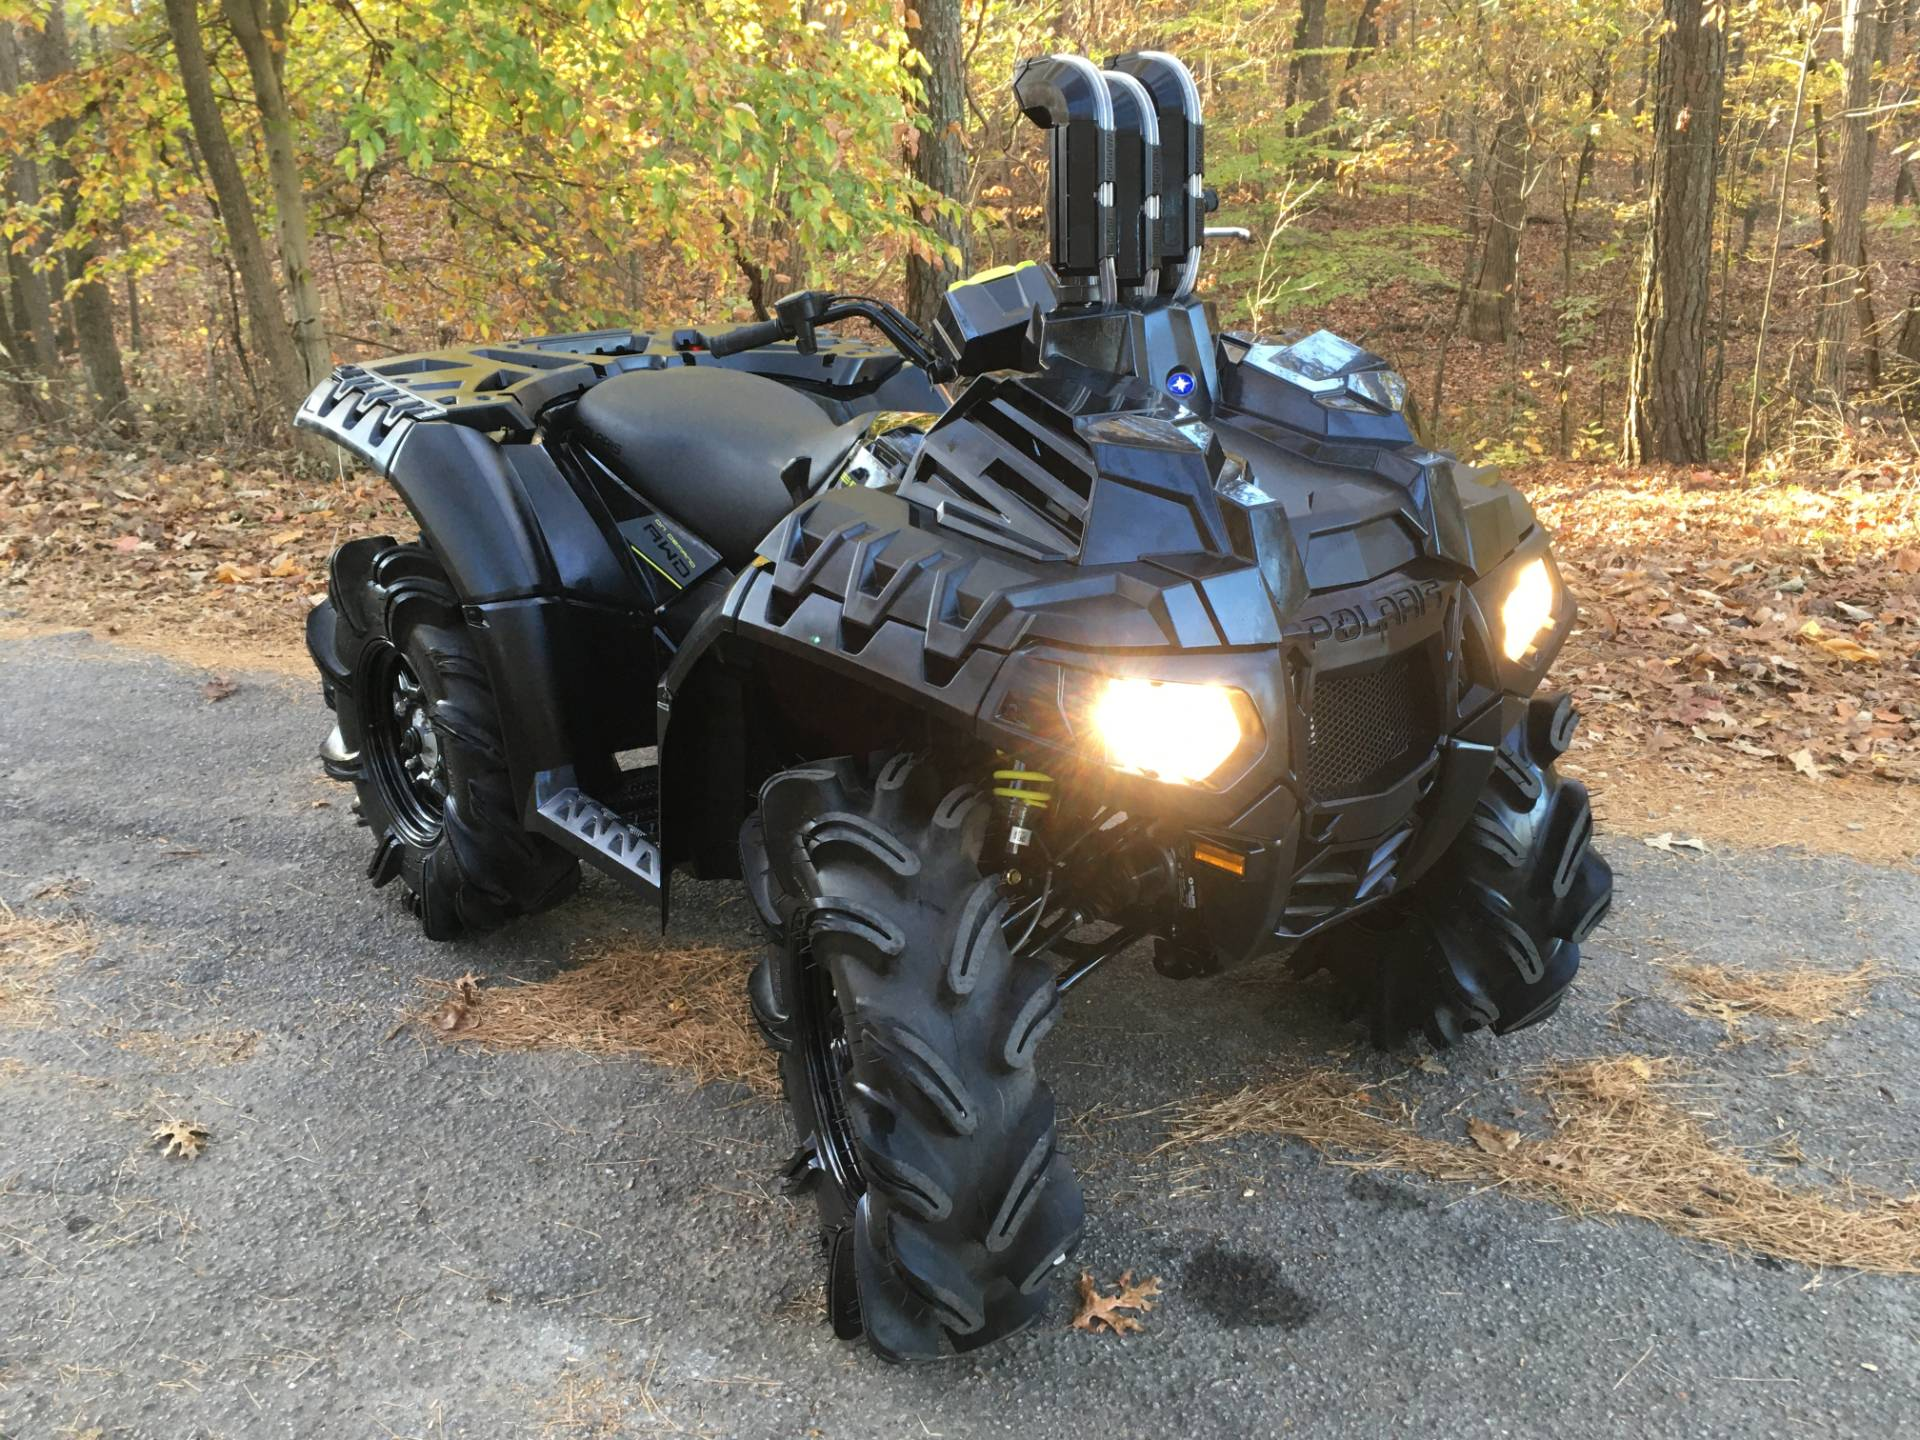 2020 POLARIS SPORTSMAN 850 HIGHLIFTER EDITION in Woodstock, Georgia - Photo 5